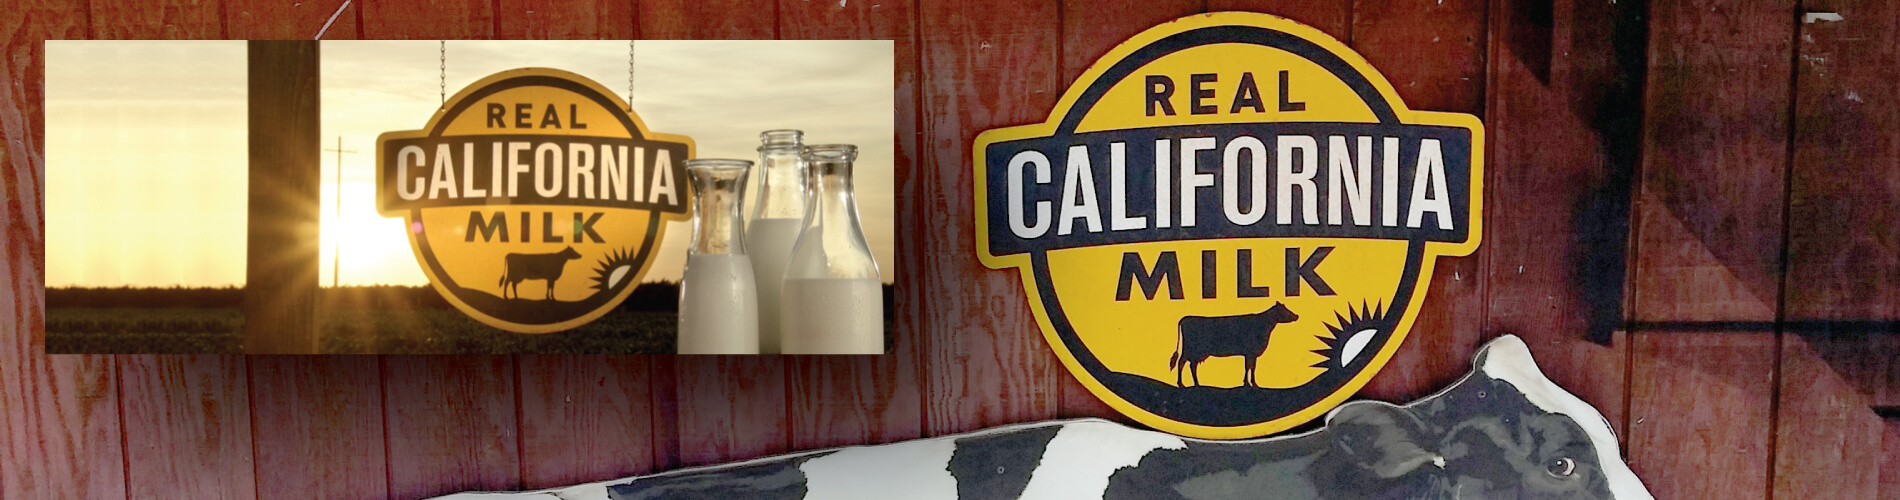 Real California Milk sign